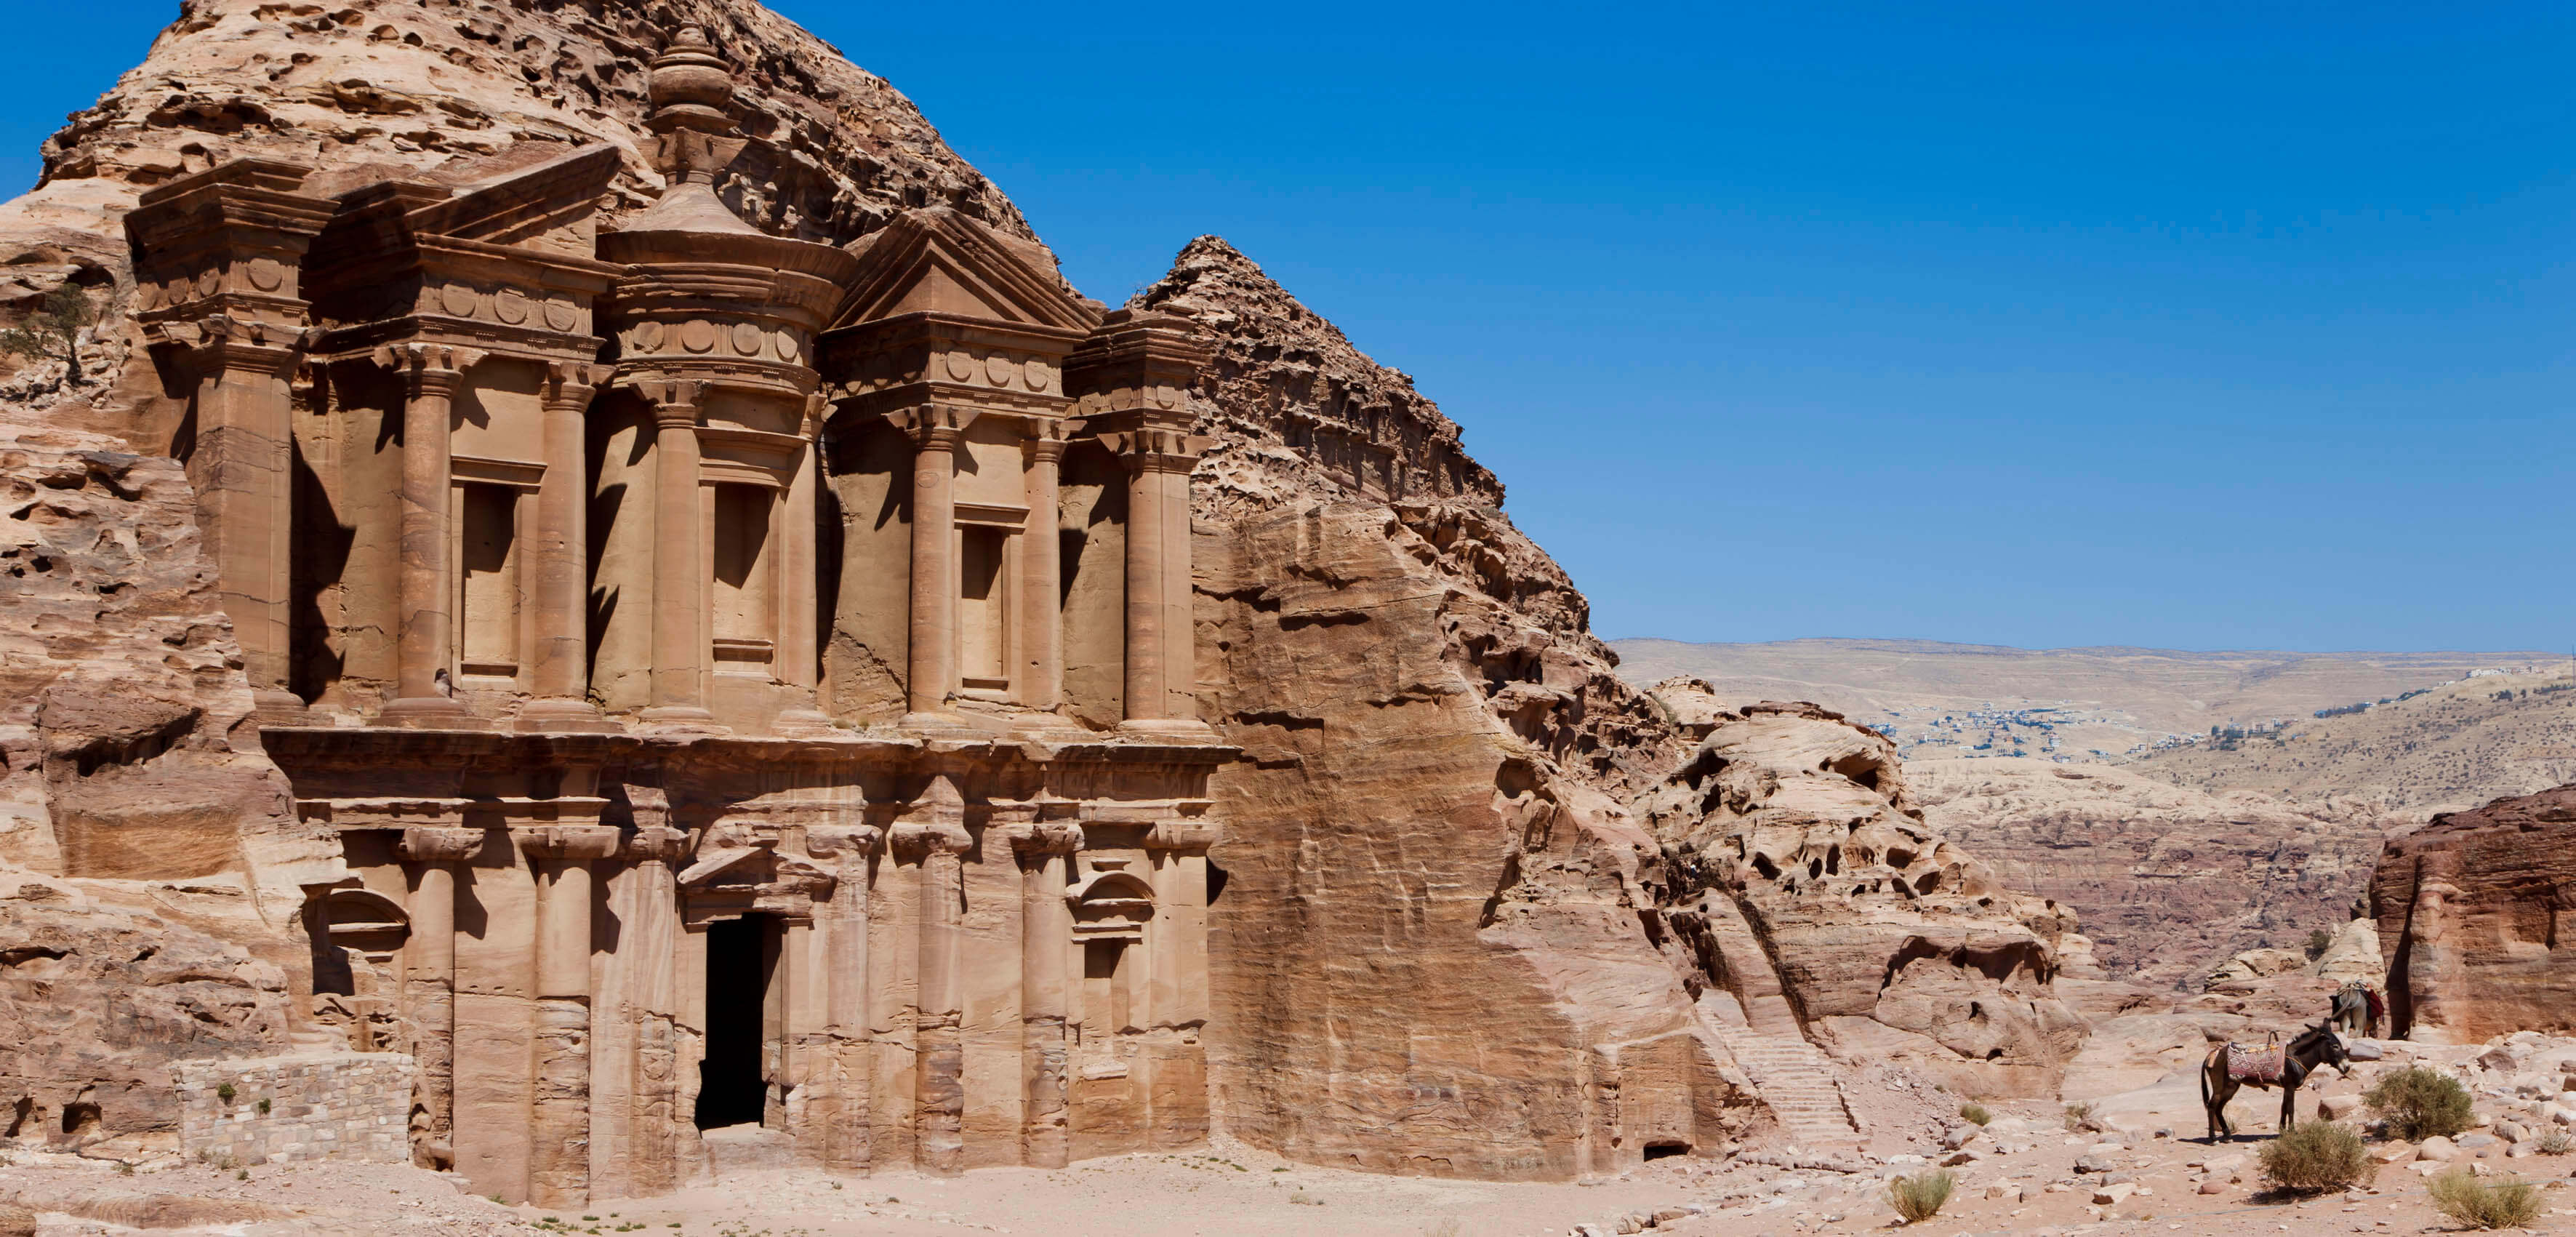 The Monastery, known locally as Ad Deir, located in the UNESCO World Heritage Site of Petra, or Rose-Red city, which was the 6th century capital city of the Nabataeans.